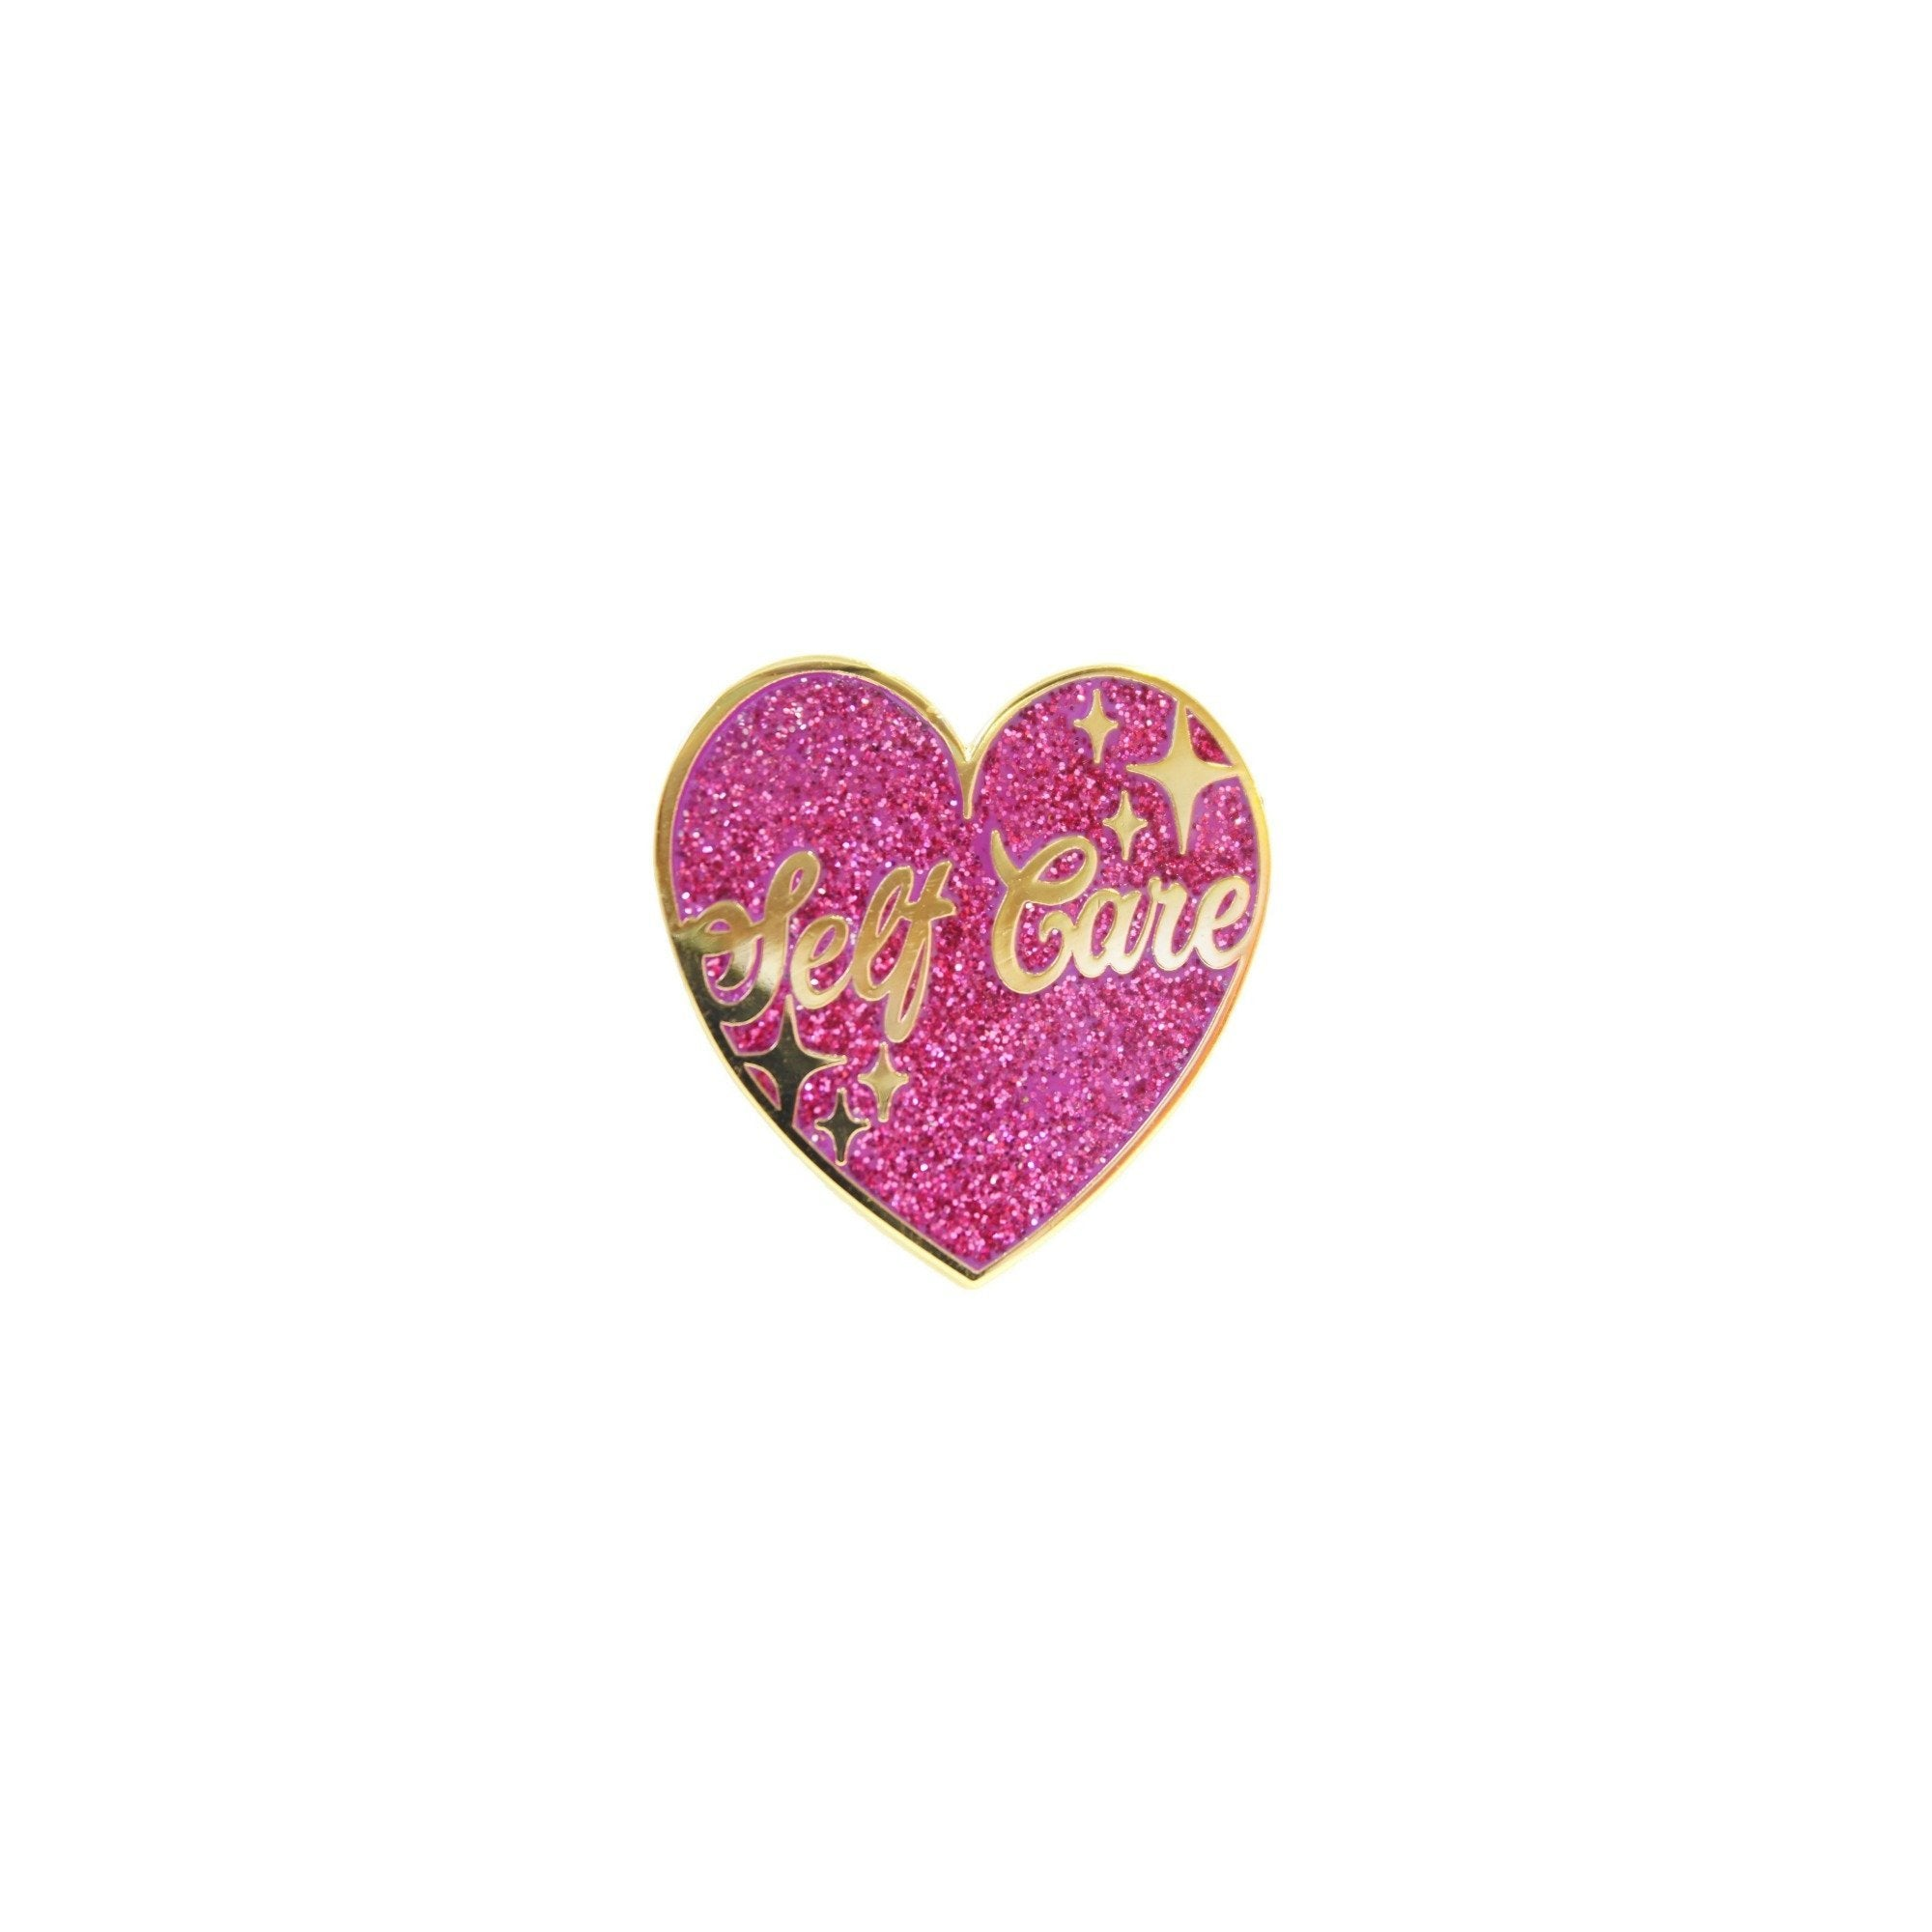 Self Care Glittery Heart Lapel Pin Badge - Minimum Mouse